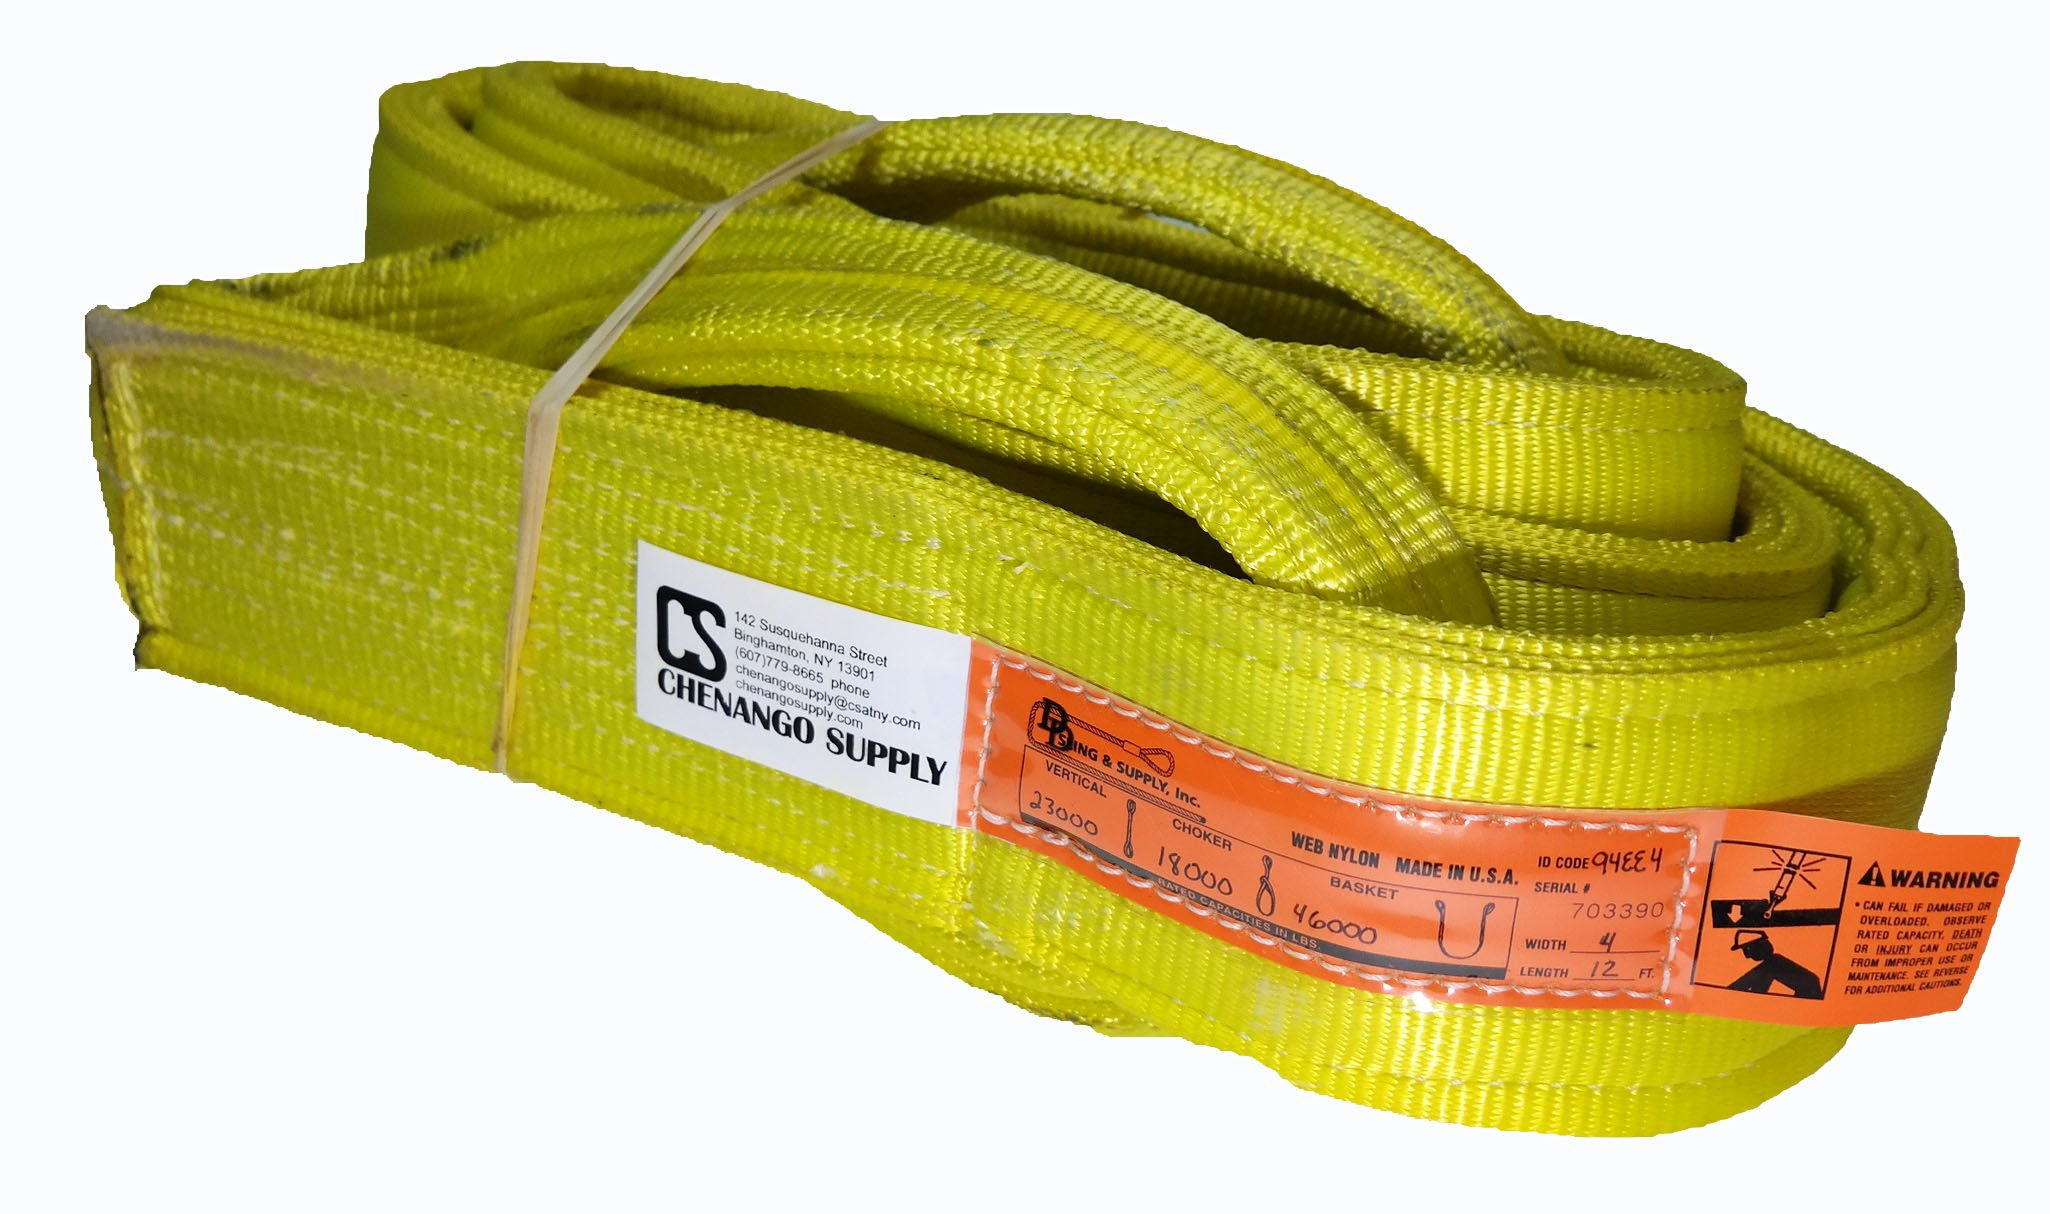 DD Sling. Multiple Sizes in Listing! (Made in USA), 4-PLY 4''x12' Nylon Lifting Web Sling, Eye & Eye, Heavy Duty (900 webbing), 23,000 lbs Vertical, 18,000 Choker, 46,000 Basket Load Capacity (Made In The USA), Multiple Sizes In Listing! (4''x12')